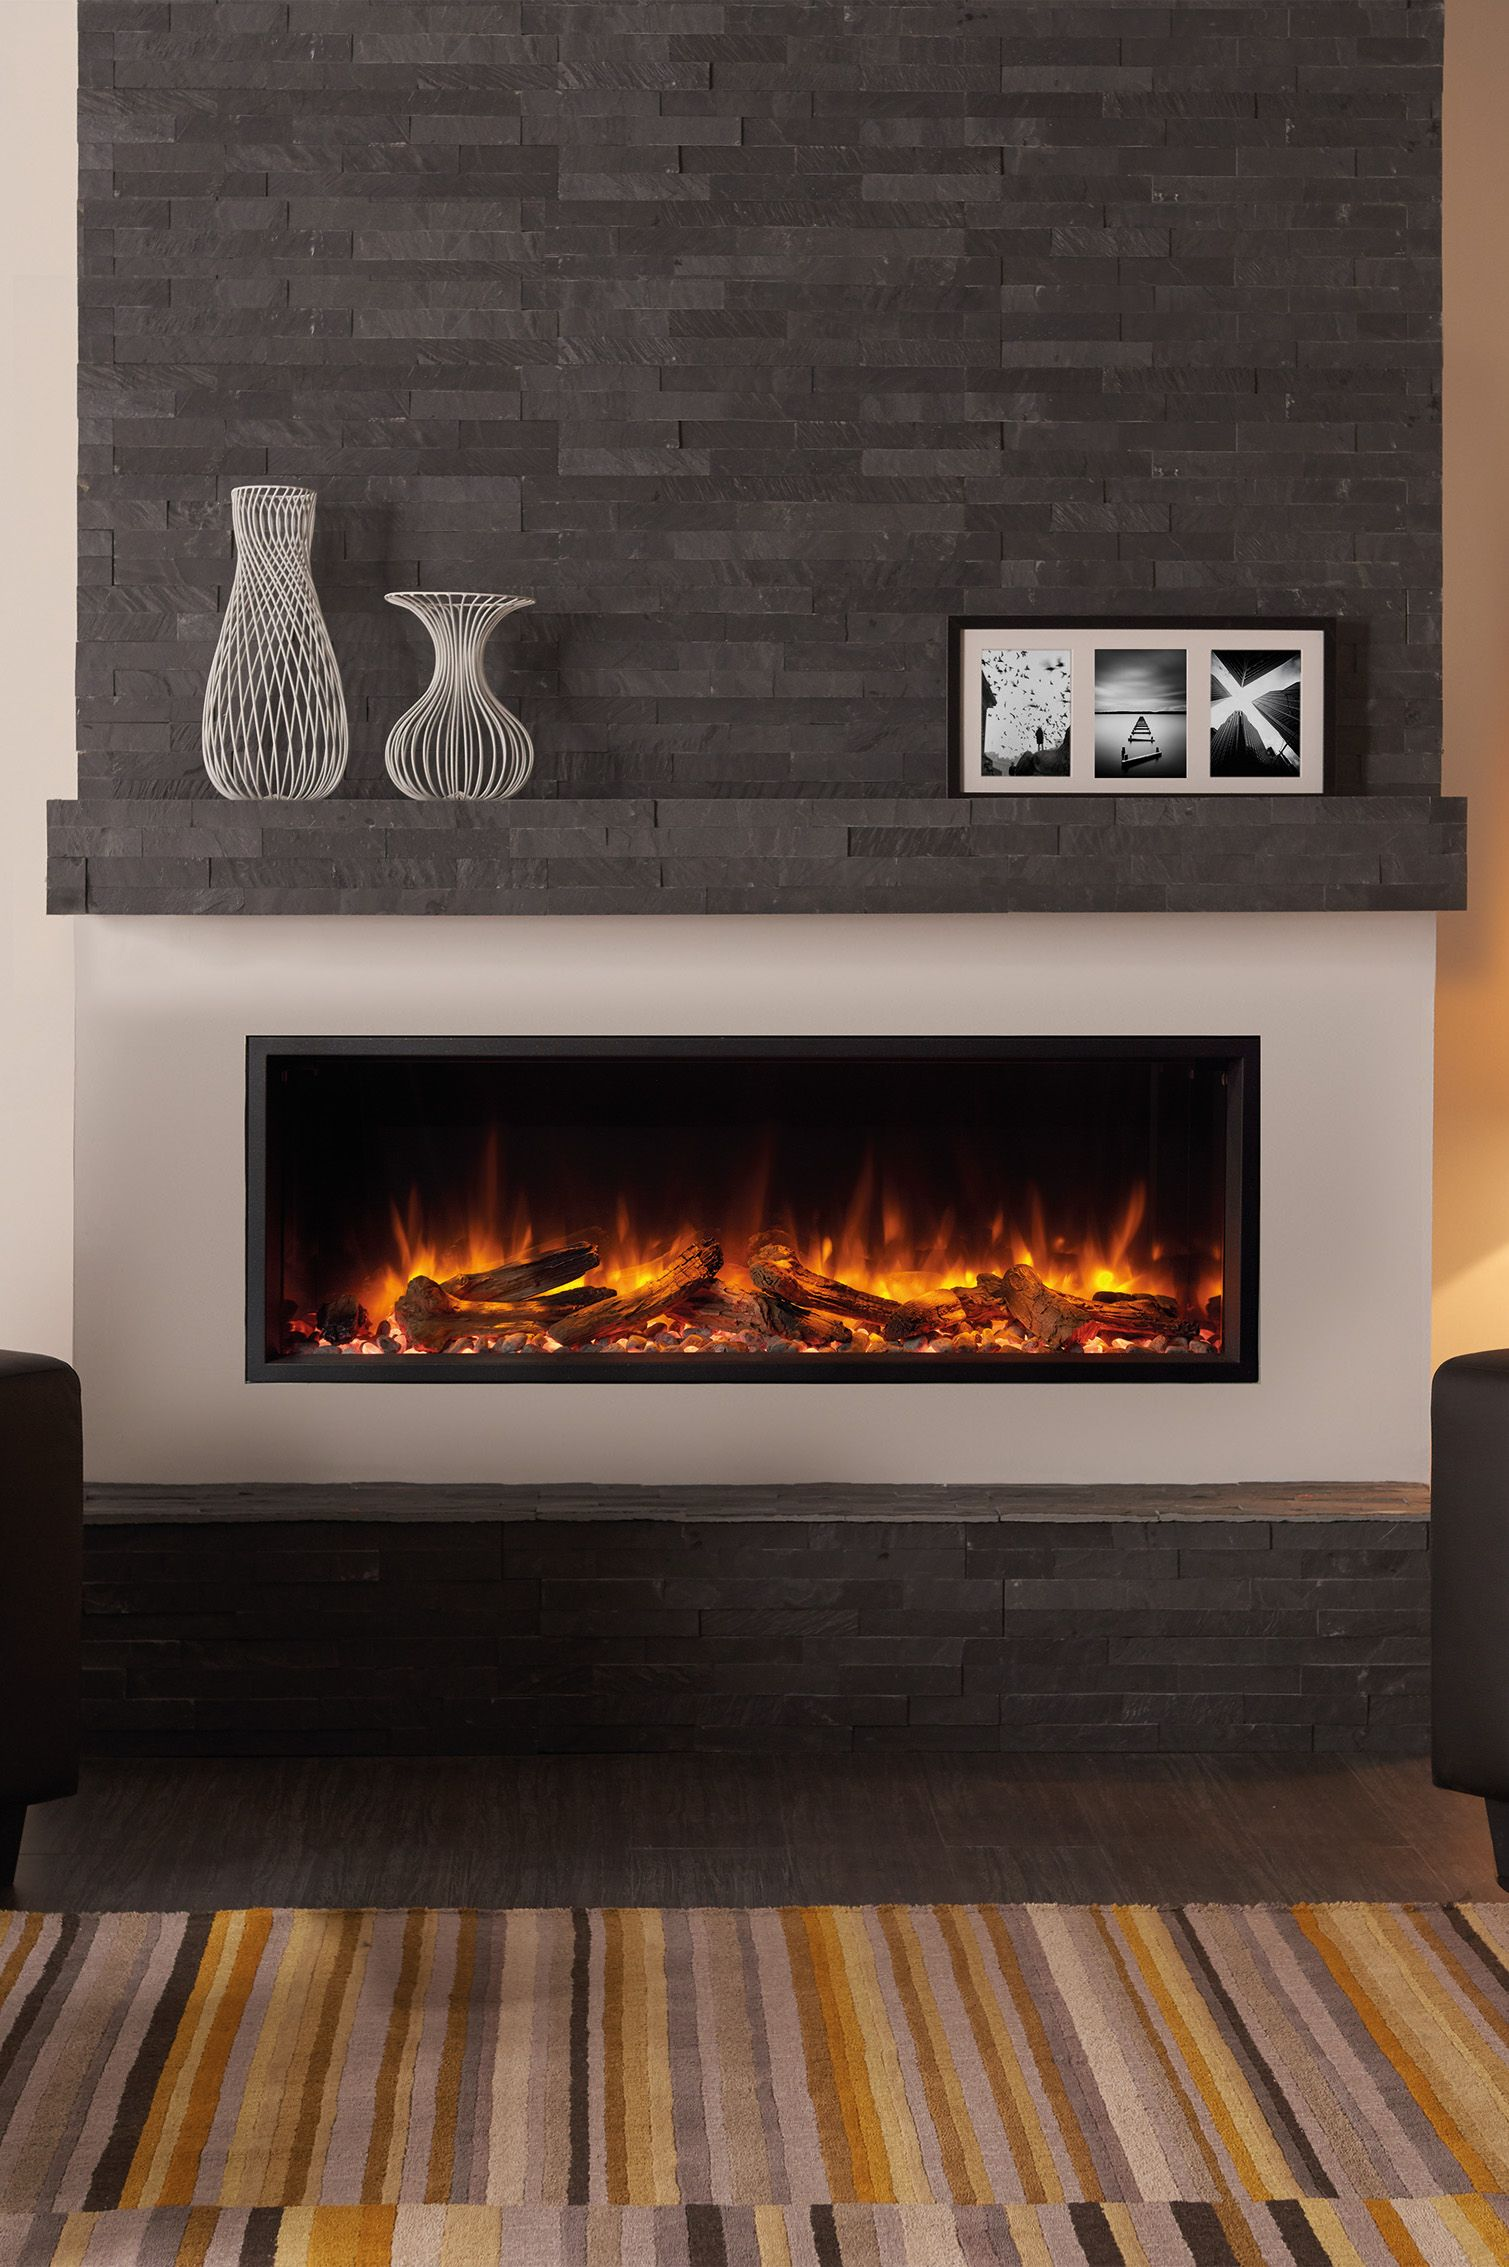 New Regency Skope 53 Single Sided Built In Electric Fireplace Heater Features Chromali Built In Electric Fireplace Fireplace Heater Electric Fireplace Heater